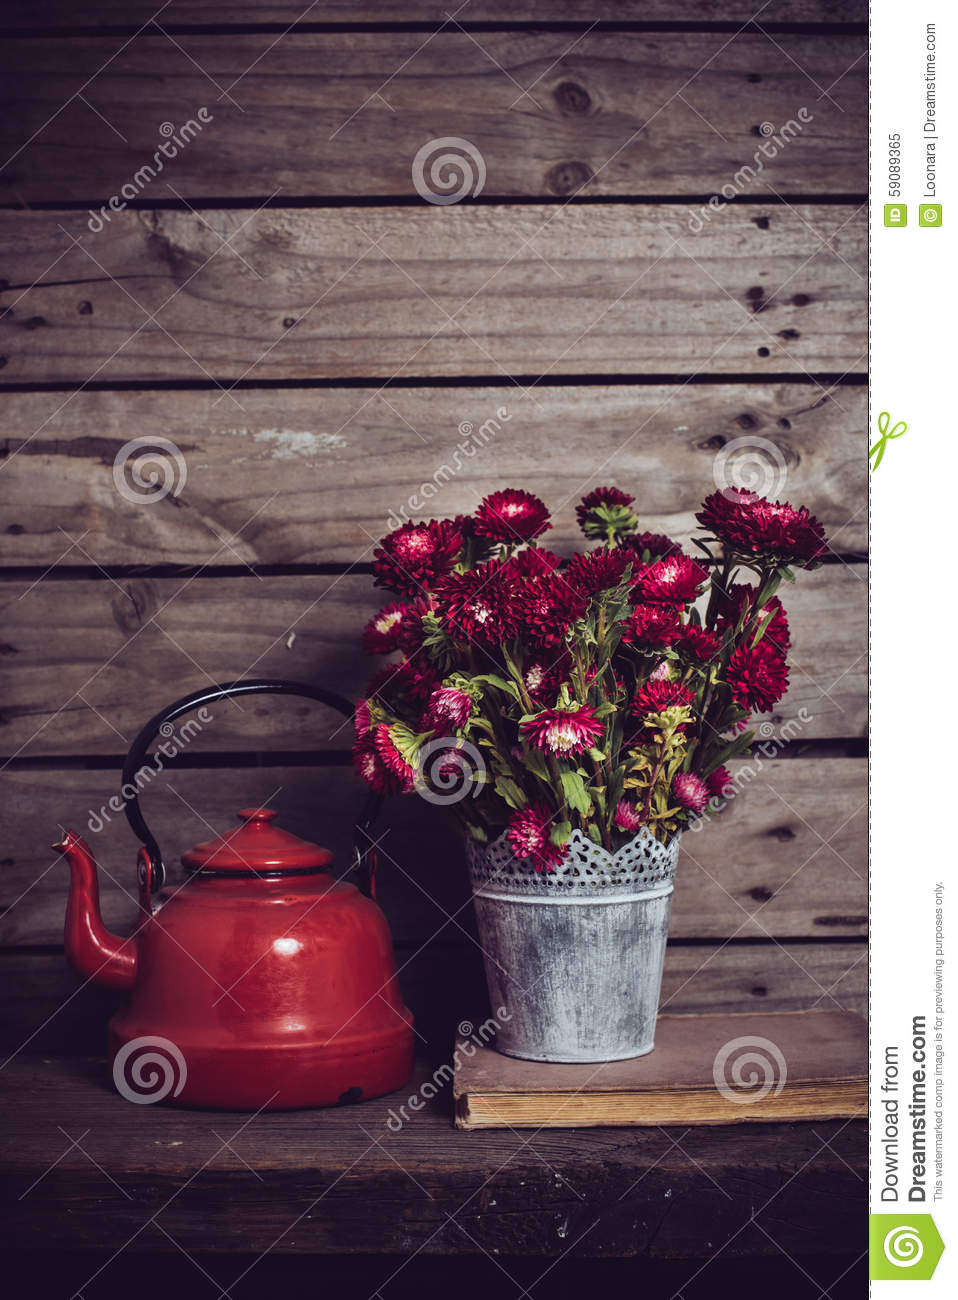 Red Flowers And Enamel Kettle Stock Image - Image: 59089365